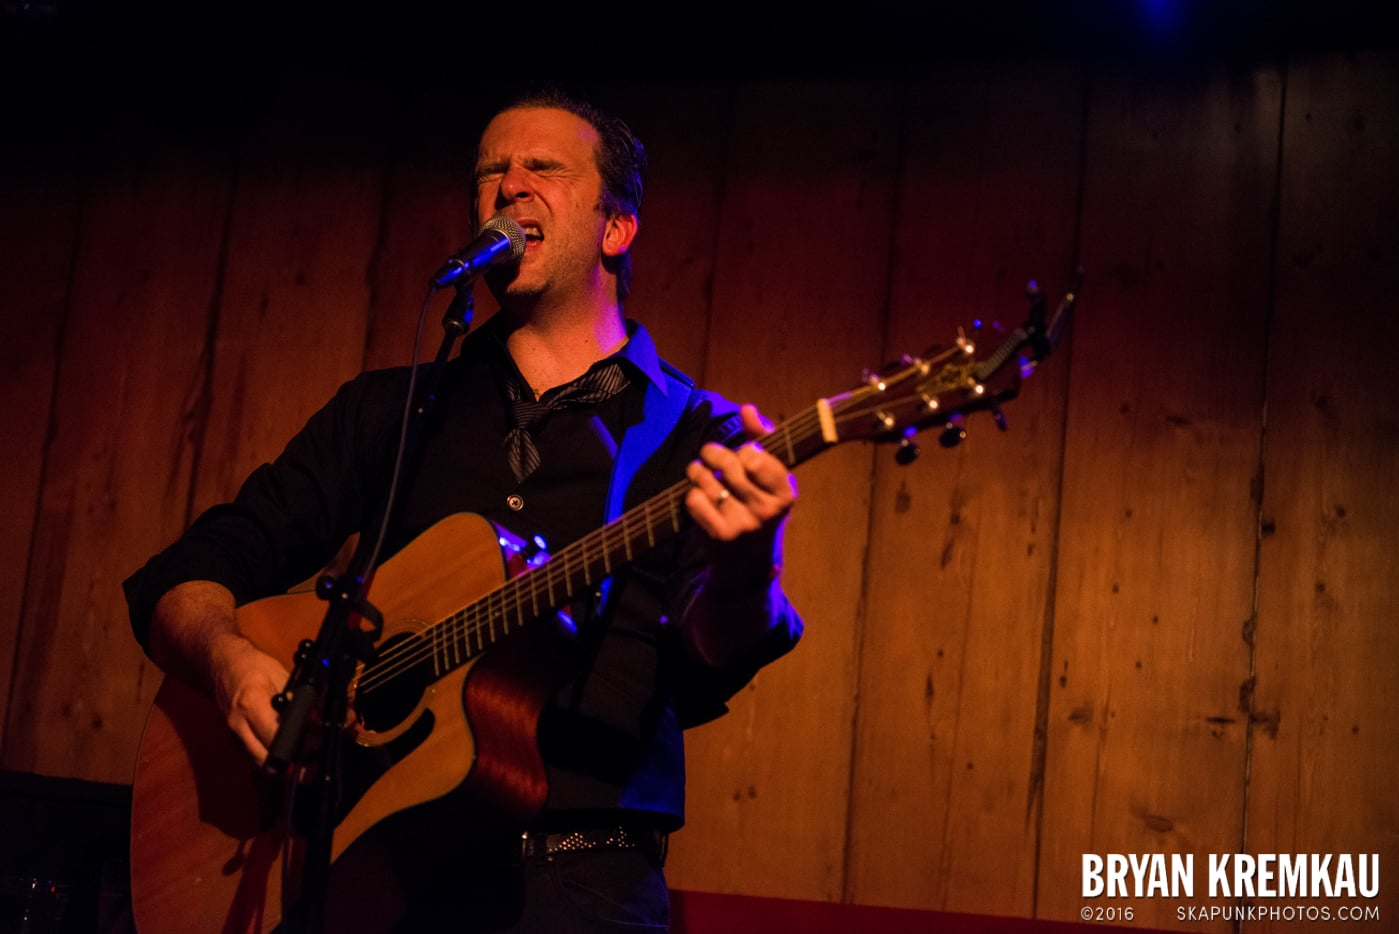 Chris Trapper @ Rockwood Music Hall, NYC - 12.7.13 (5)